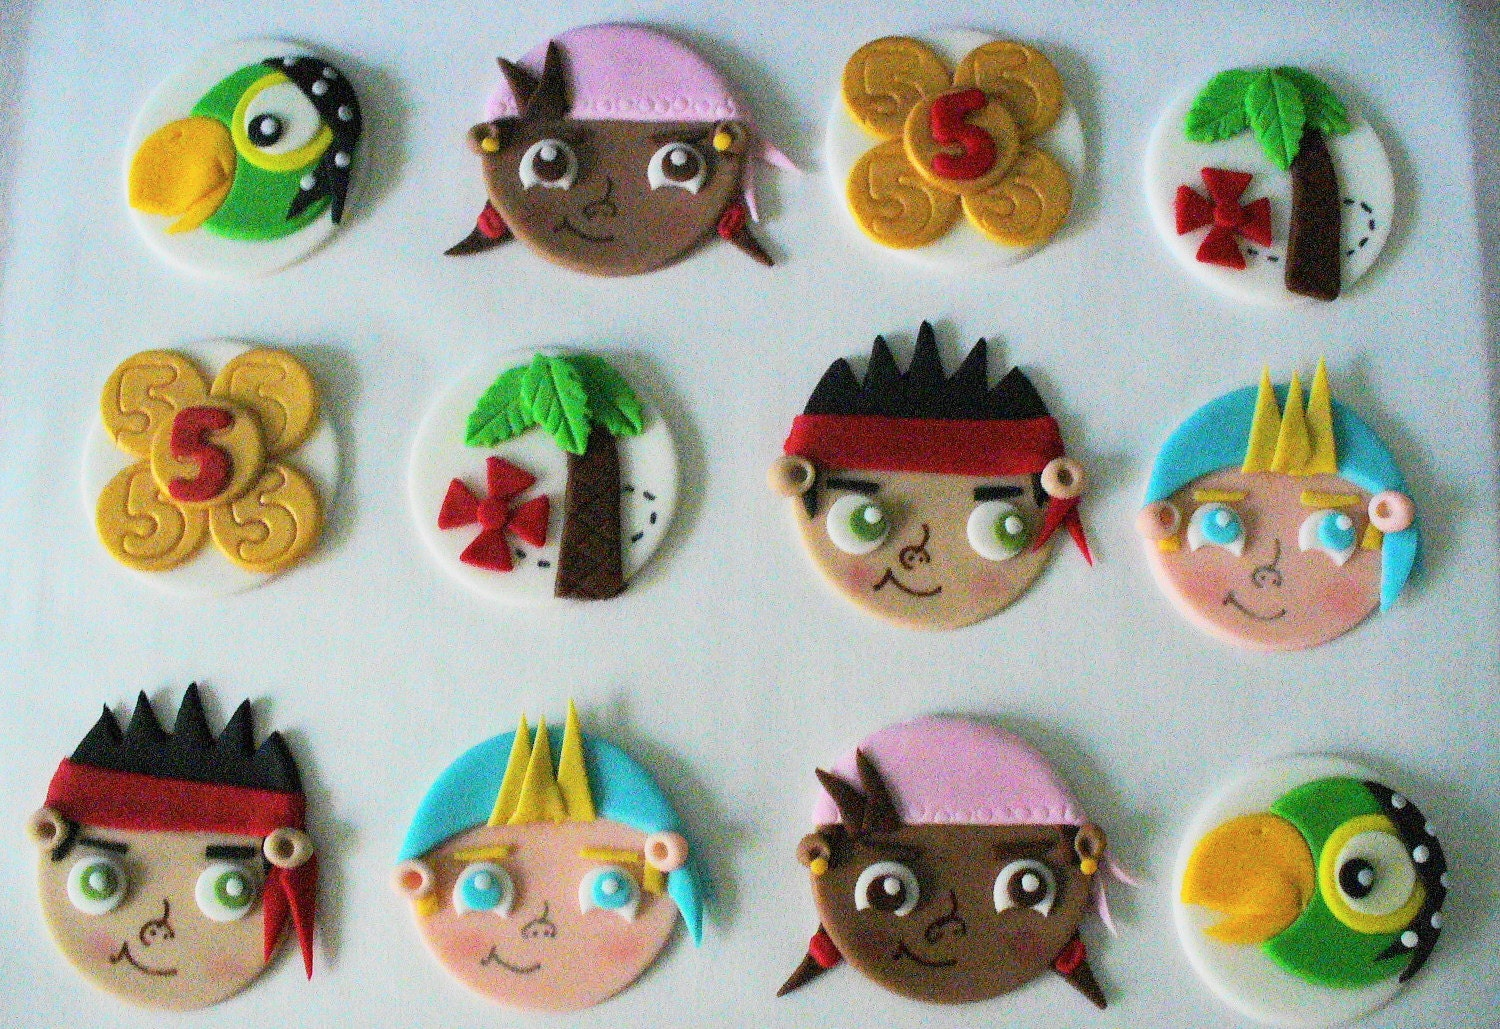 jake and the neverland pirates cupcakes - photo #11